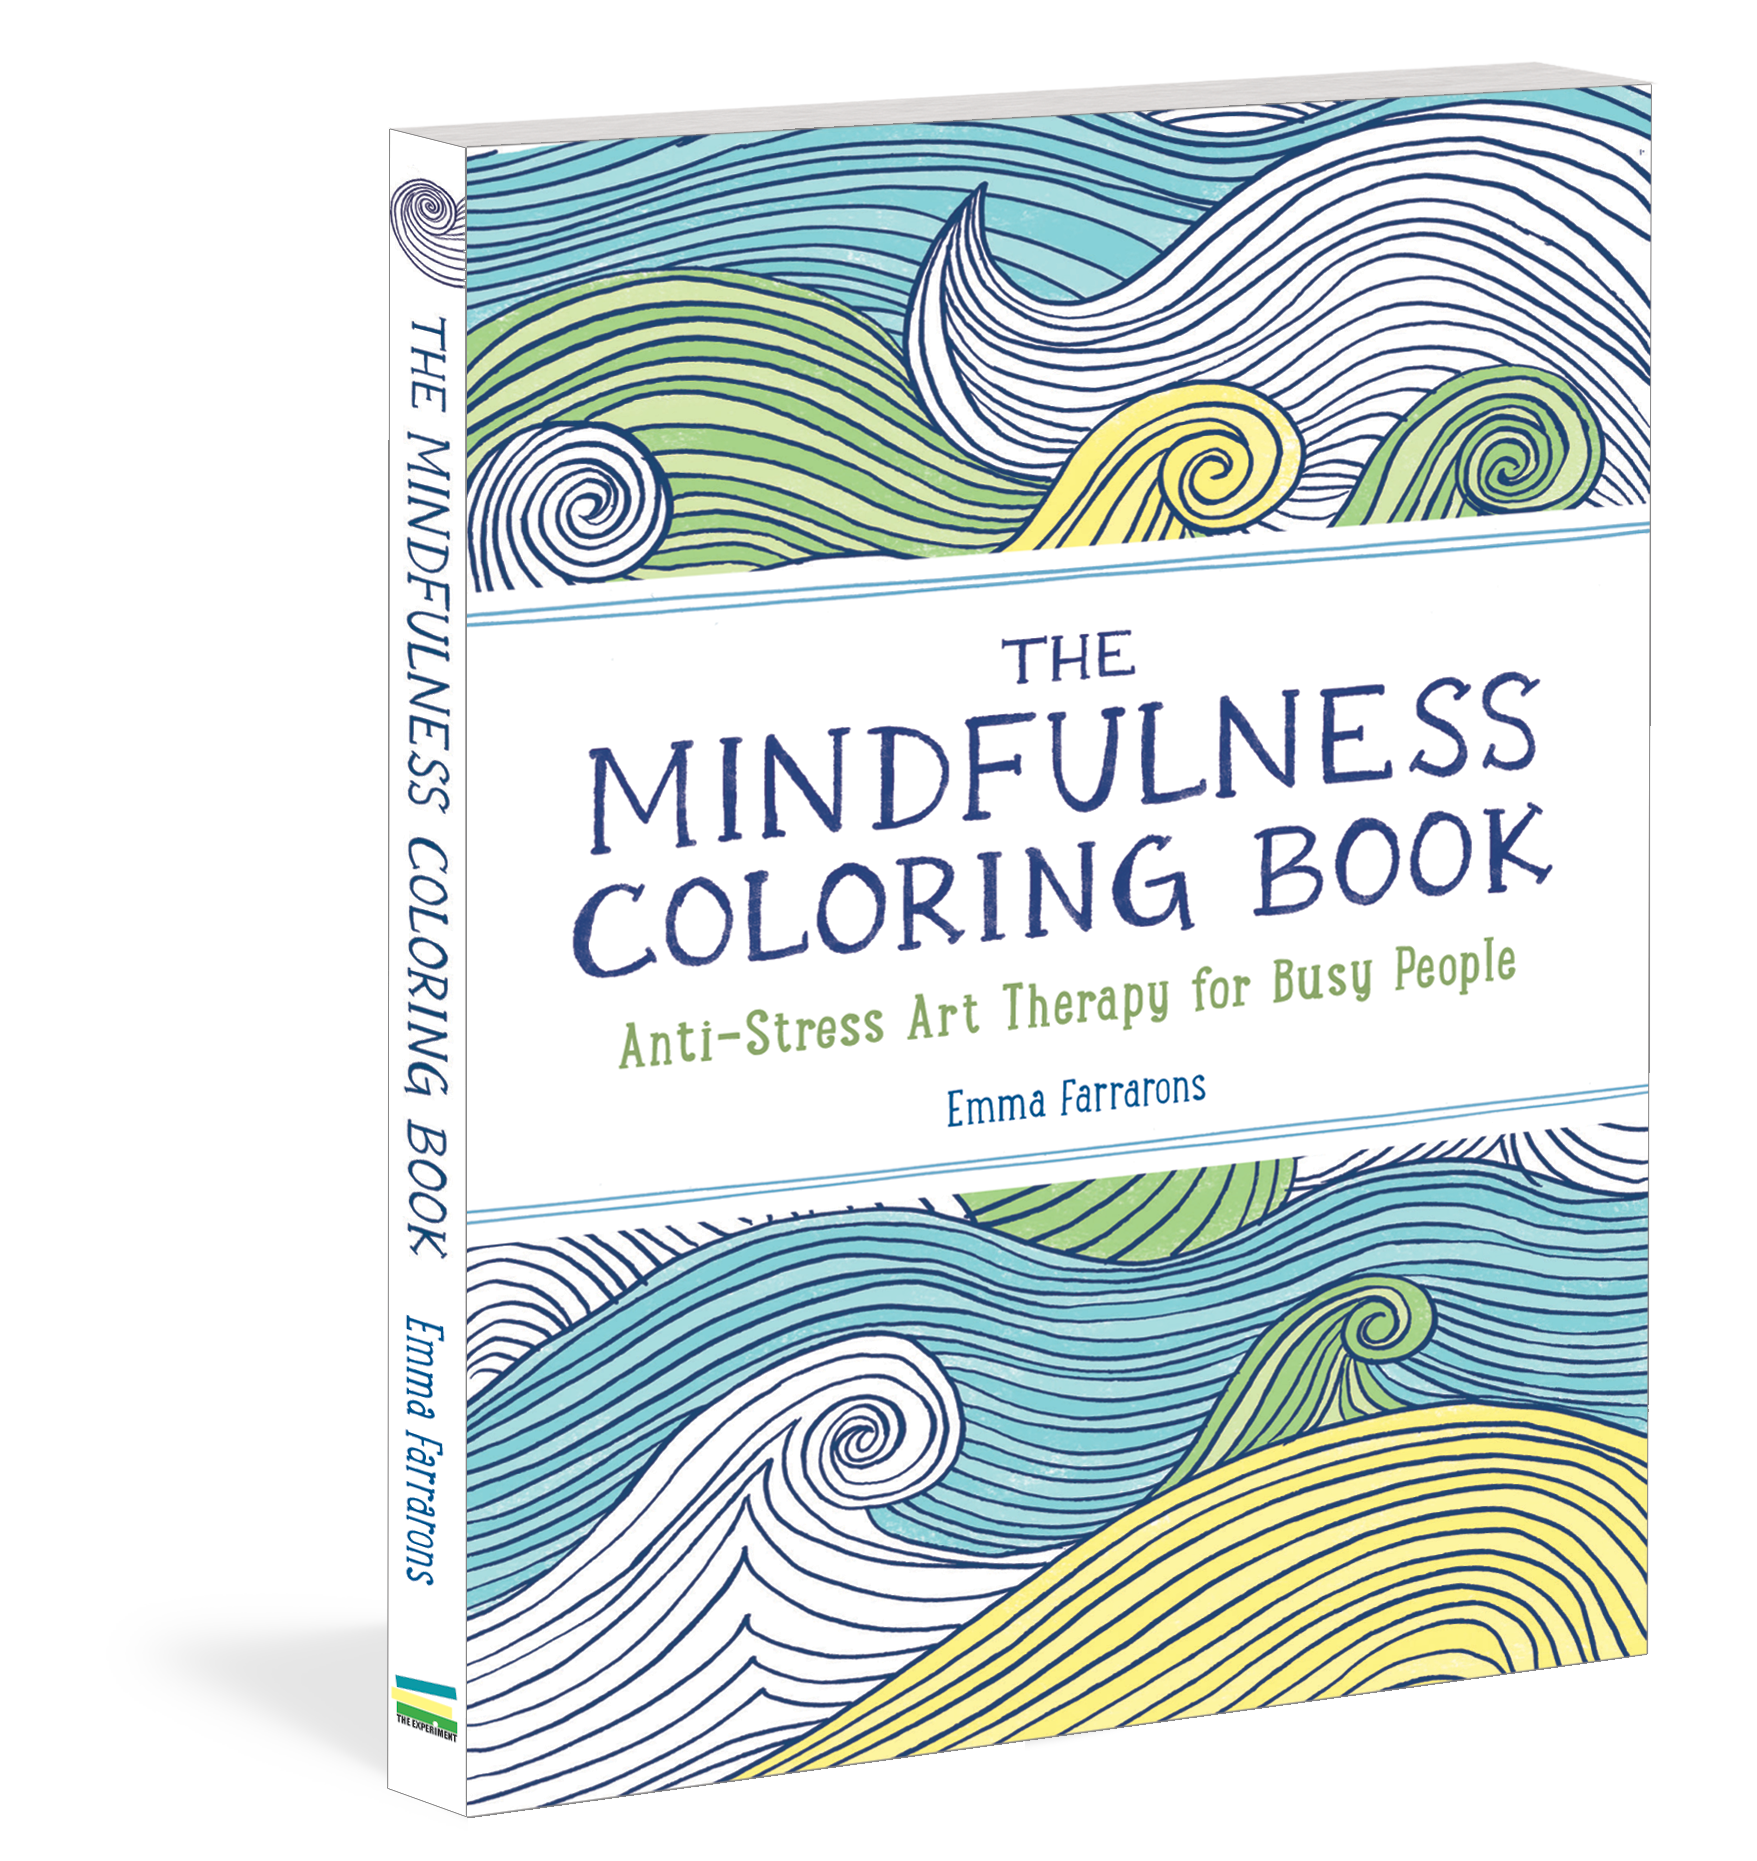 The Mindfulness Coloring Book Anti Stress